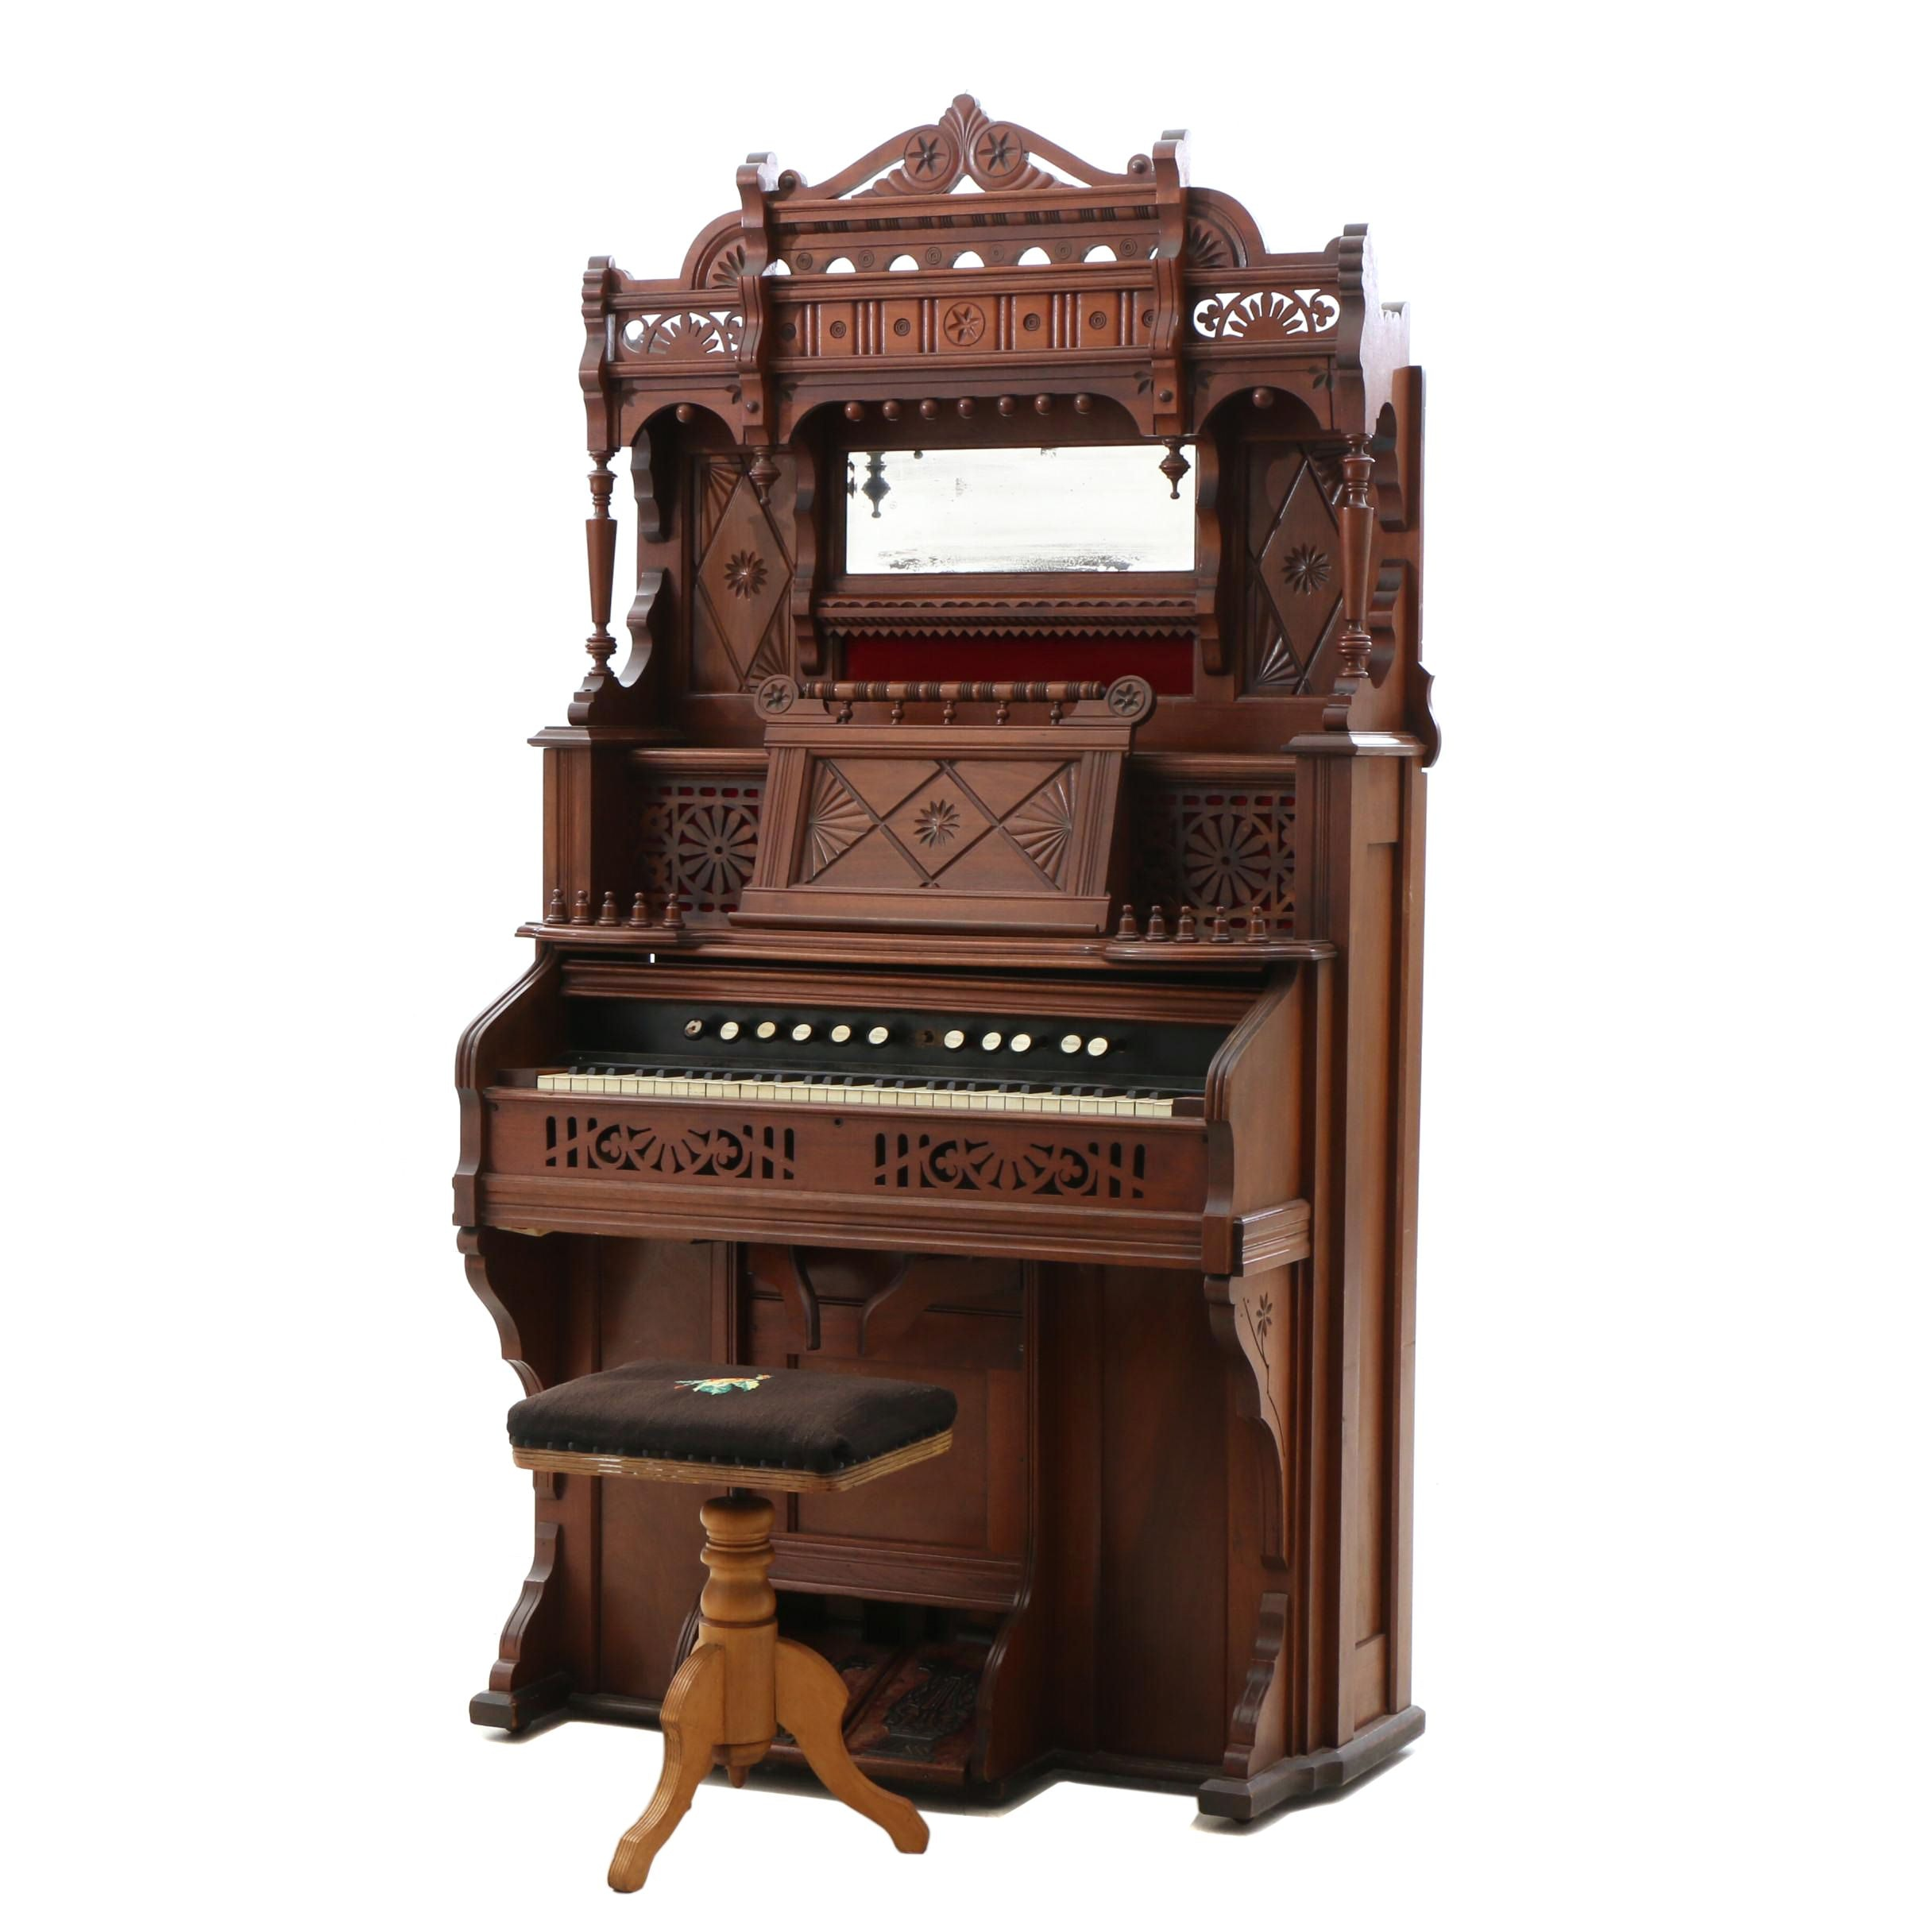 Victorian Pump Organ by Chicago Cottage Organ Company